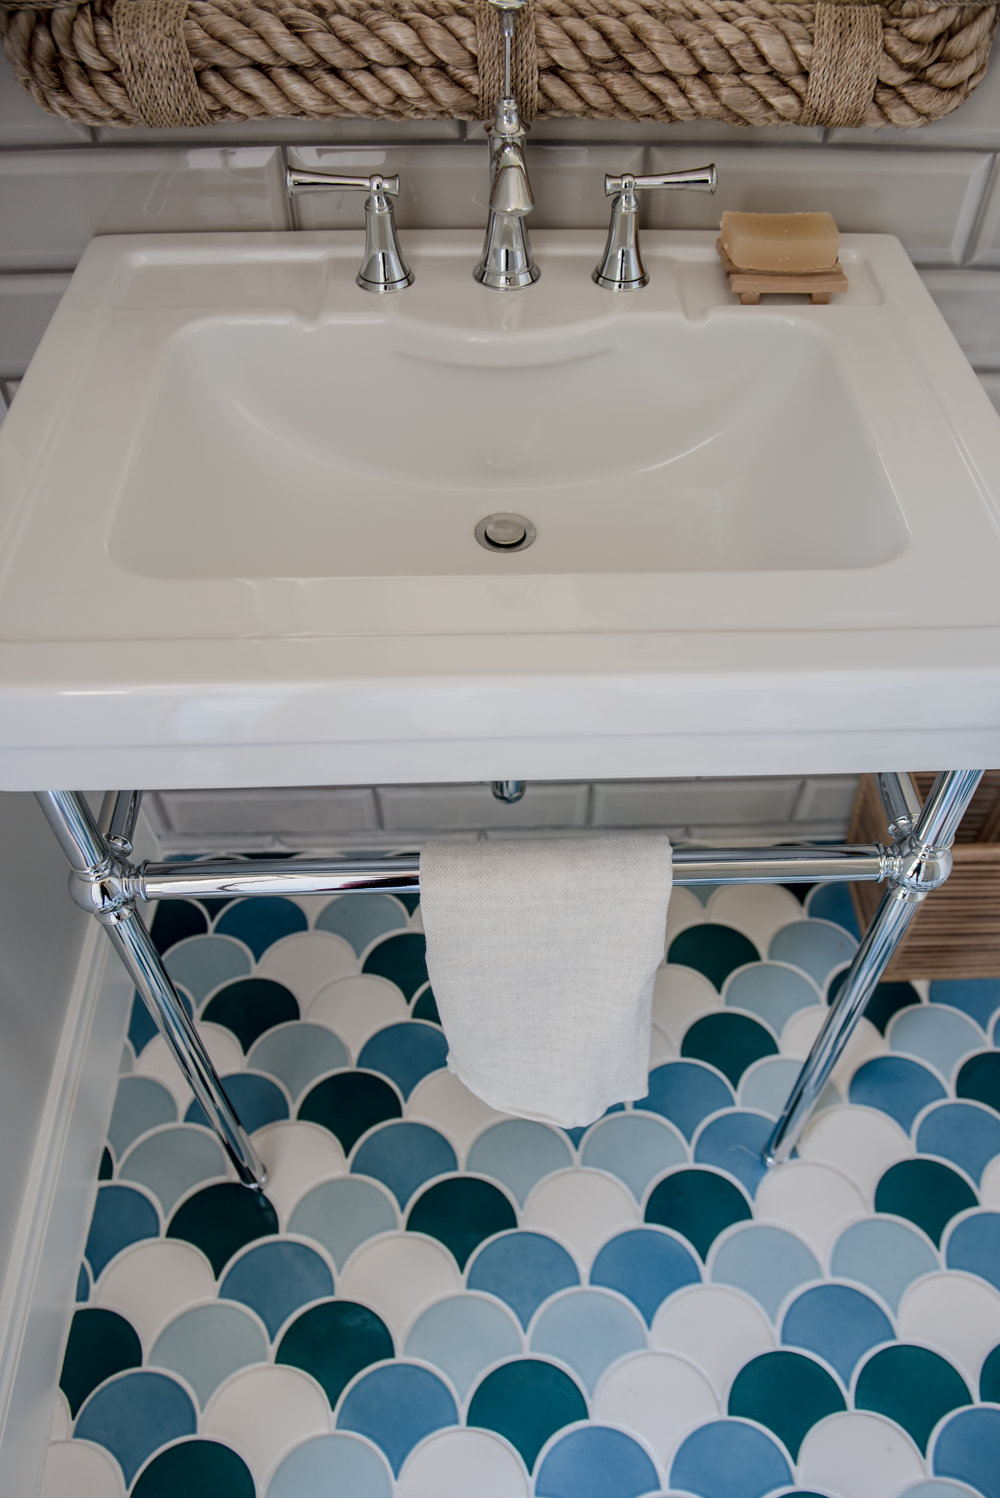 46+Poolbath+Nautical+Scales+Moroccan+Subway+blues+fishscales.jpg